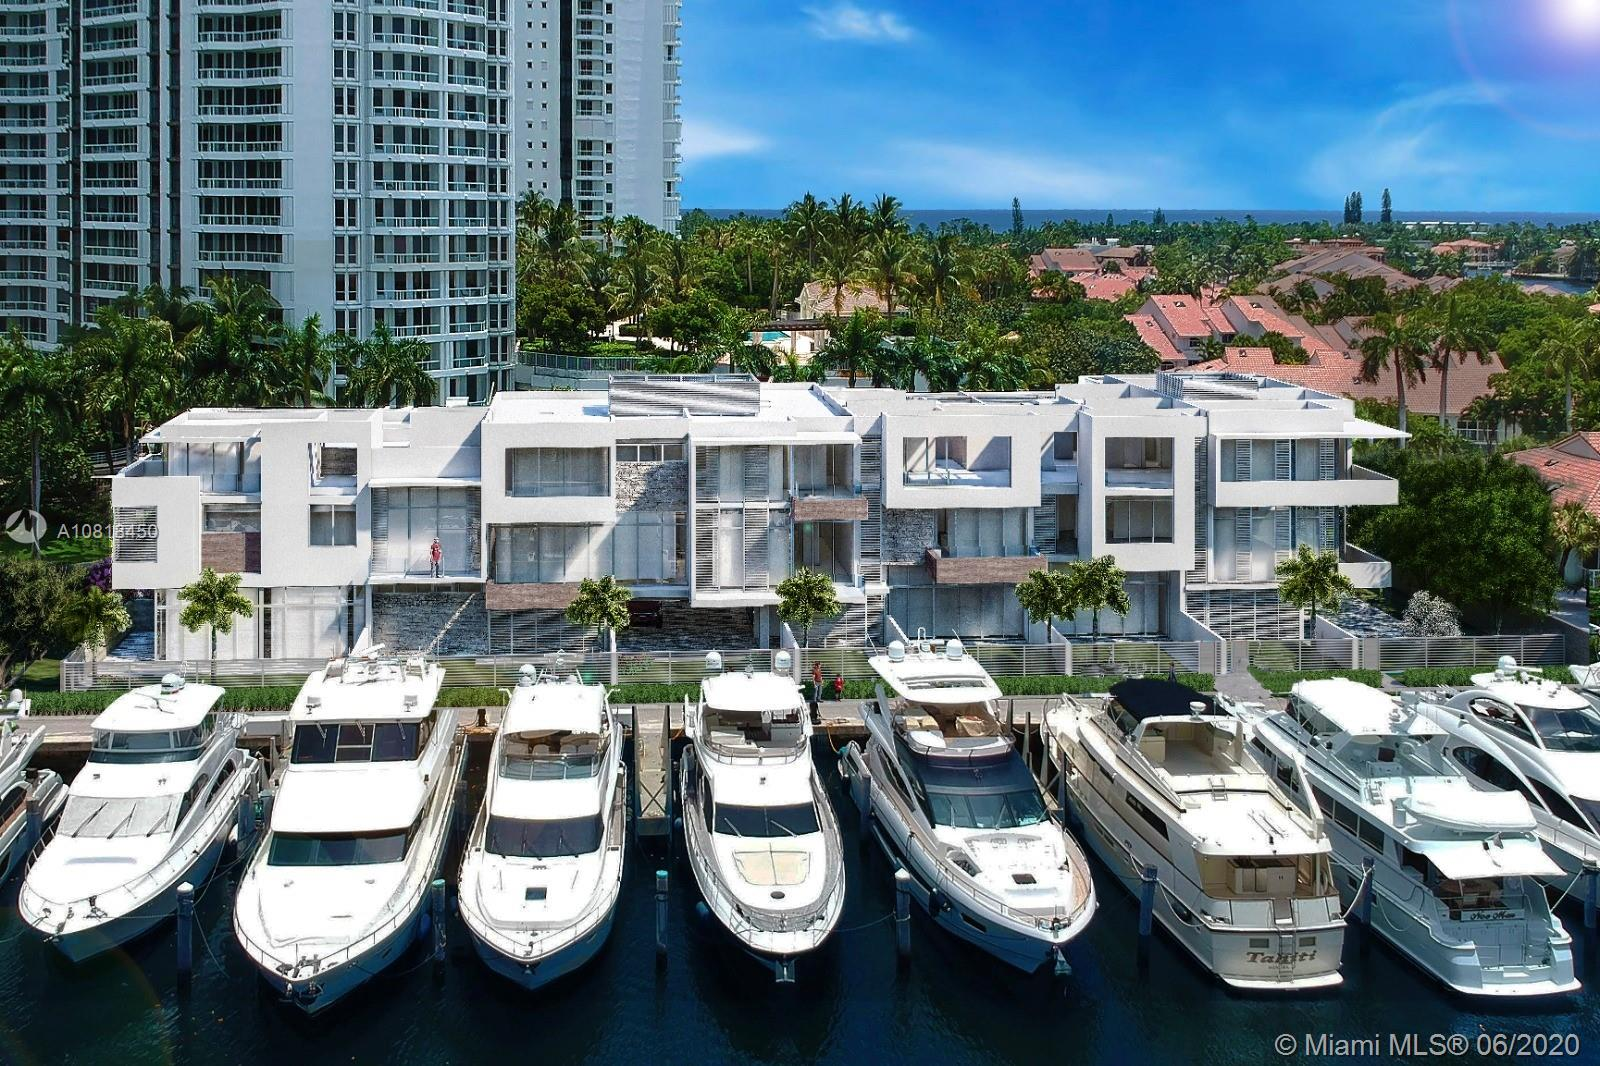 New Waterfront Townhome boasting  3,680 interior sqft and a total of 4,981 sqft. Located at The Point in Aventura, this waterfront residence will be delivered this summer with Interiors By Steven G. custom finishing, Mia Cucina kitchen, and bath with Italian cabinetry, Subzero and Wolf appliances, porcelain floors throughout, 12-foot ceiling heights in living room, and outdoor patios. TH has a large den on rooftop with full bathroom and walk-in closet. Owners enjoy a 25,000 SF state of the art Club & Spa, fitness center, Spa Café, and lighted tennis courts. Boat dockage also available. Located near the new Aventura Charter High School.